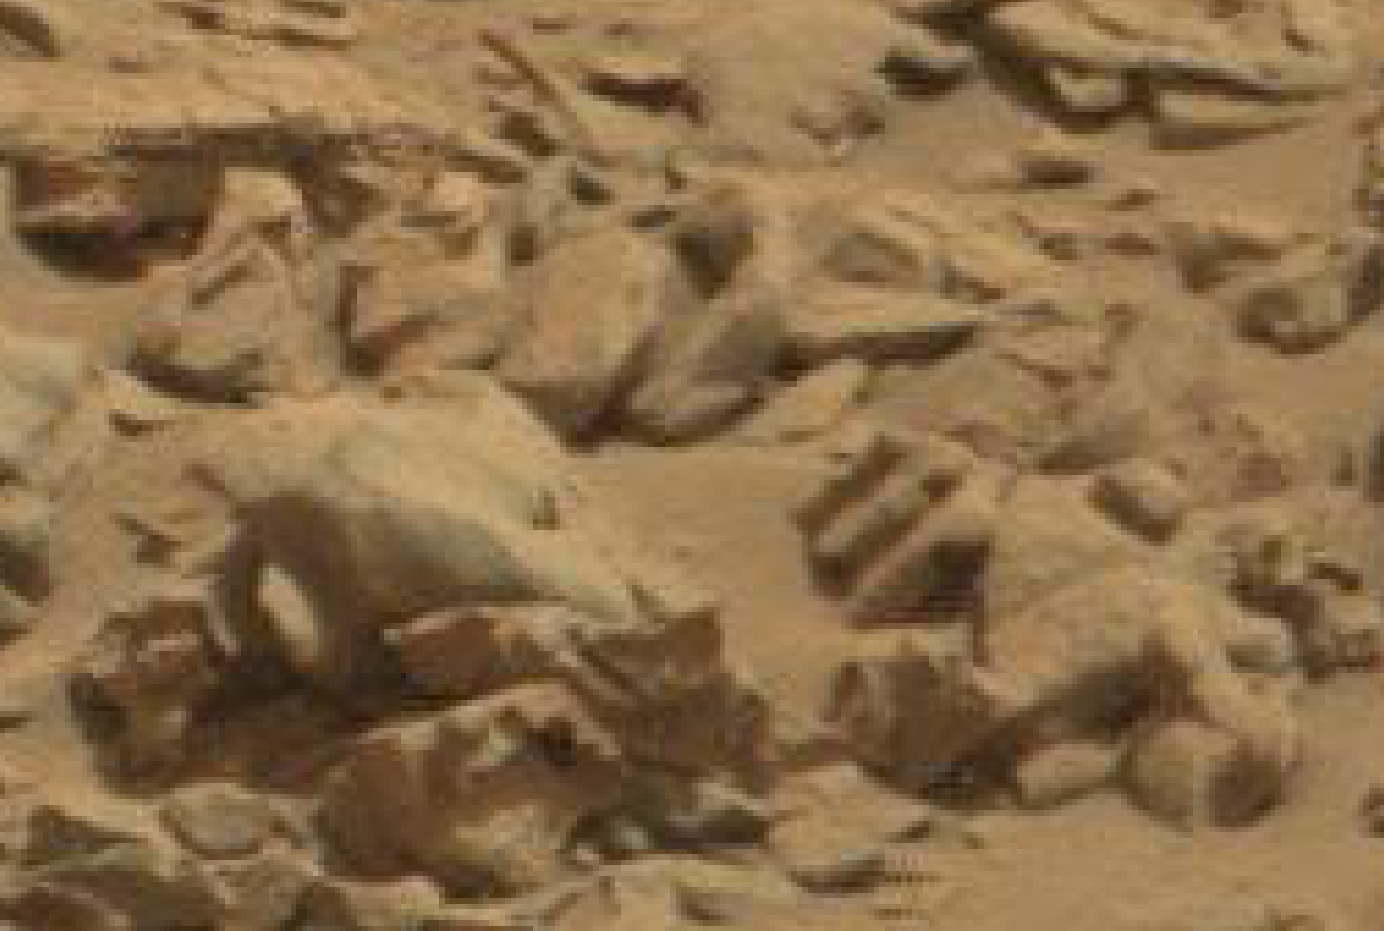 mars anomaly heads b sol 712 was life on mars